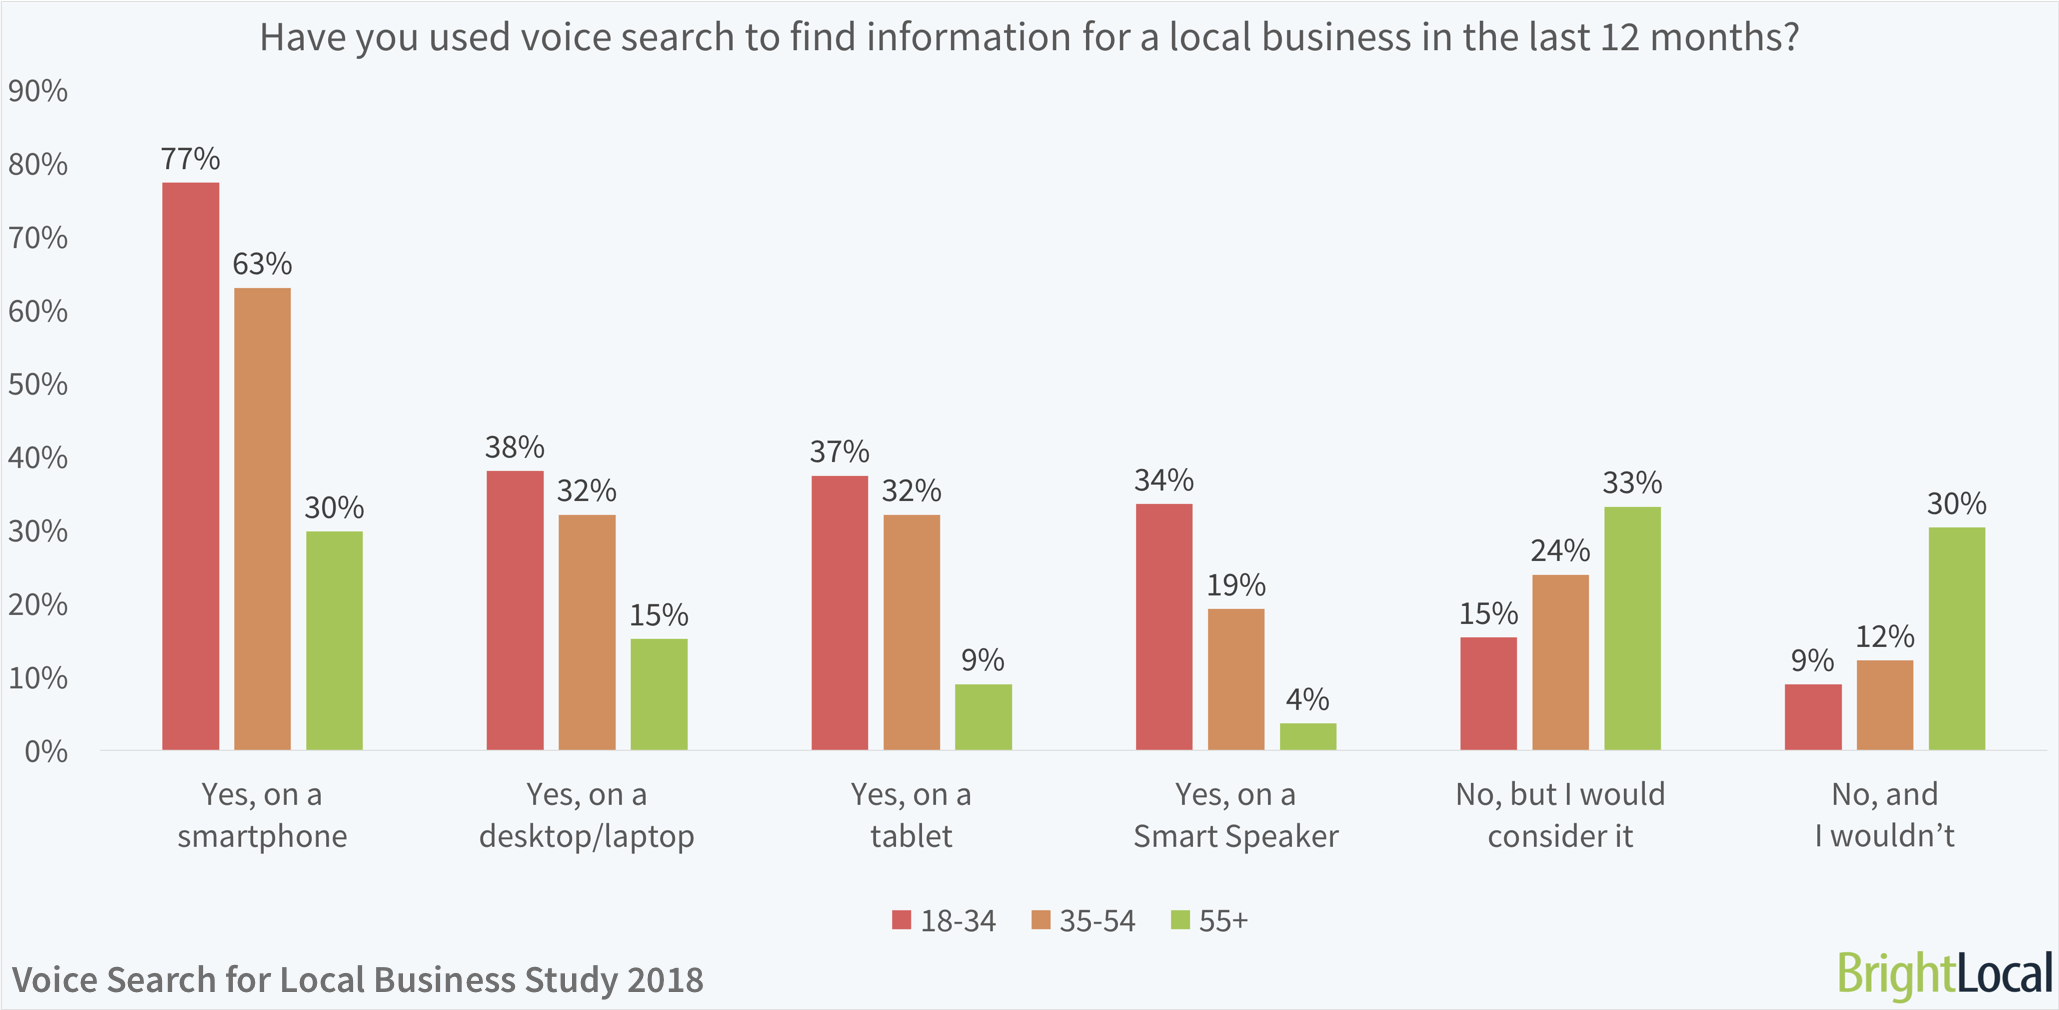 Age split: Have you used voice search to find information for a local business in the last 12 months? | BrightLocal Voice Search for Local Business Study